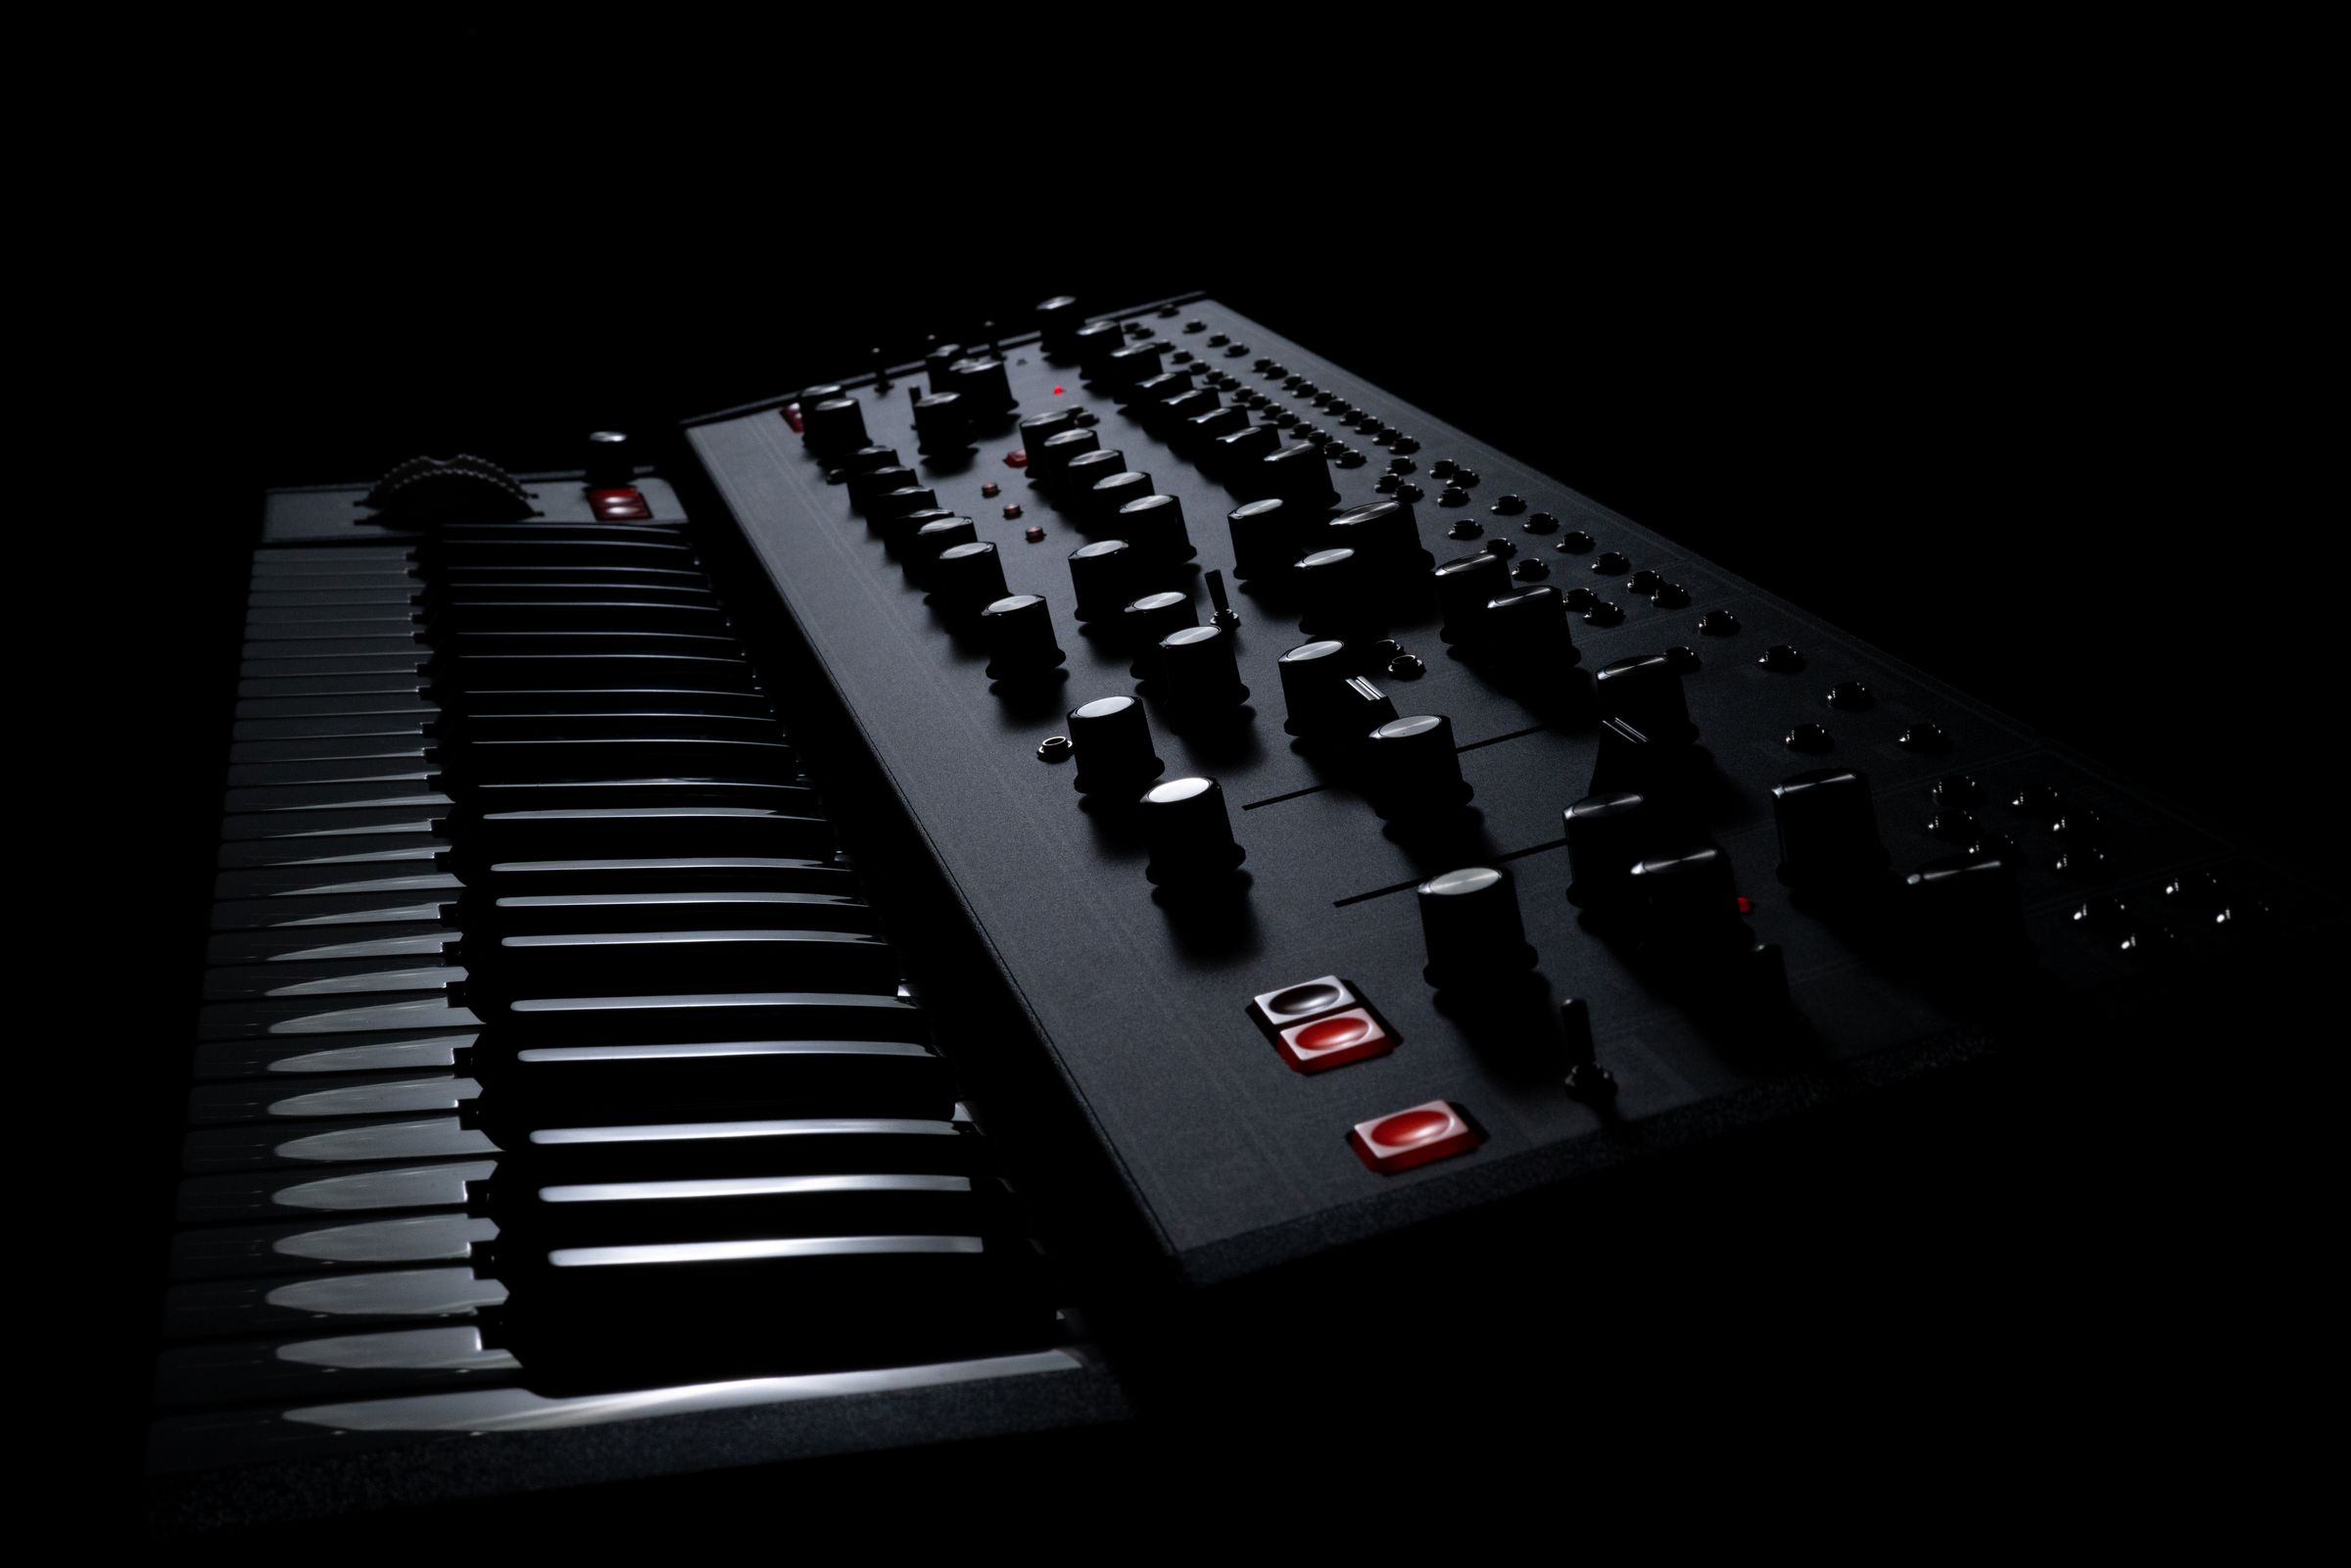 Moog's Matriarch gets dark; go deep into modular synthesis on this instrument with us - CDM Create Digital Music